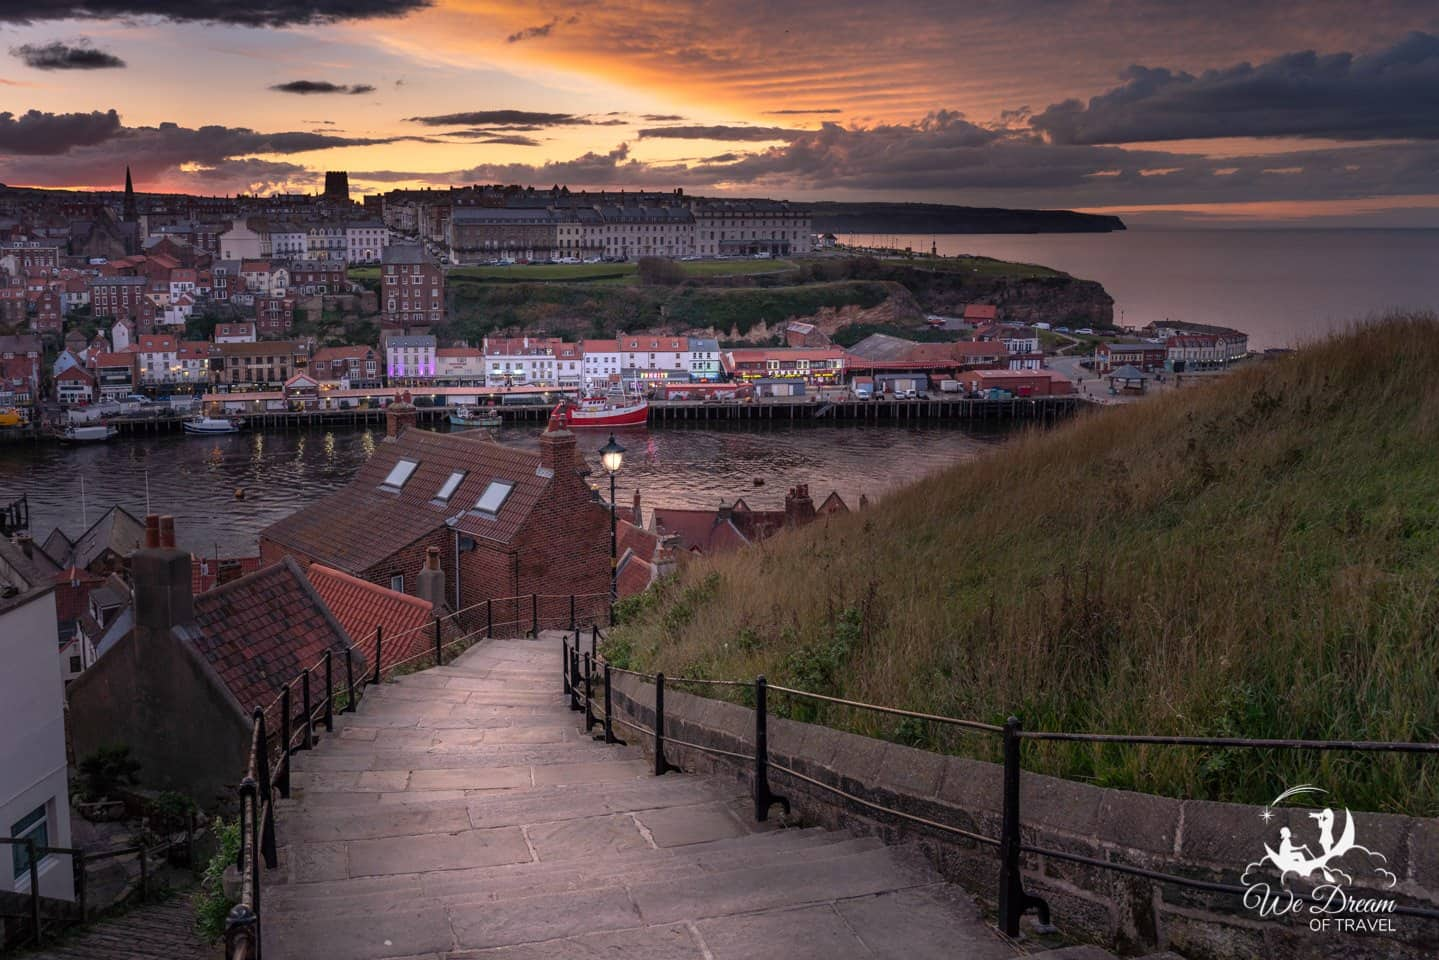 Sunset over Whitby from the 199 steps viewpoint.